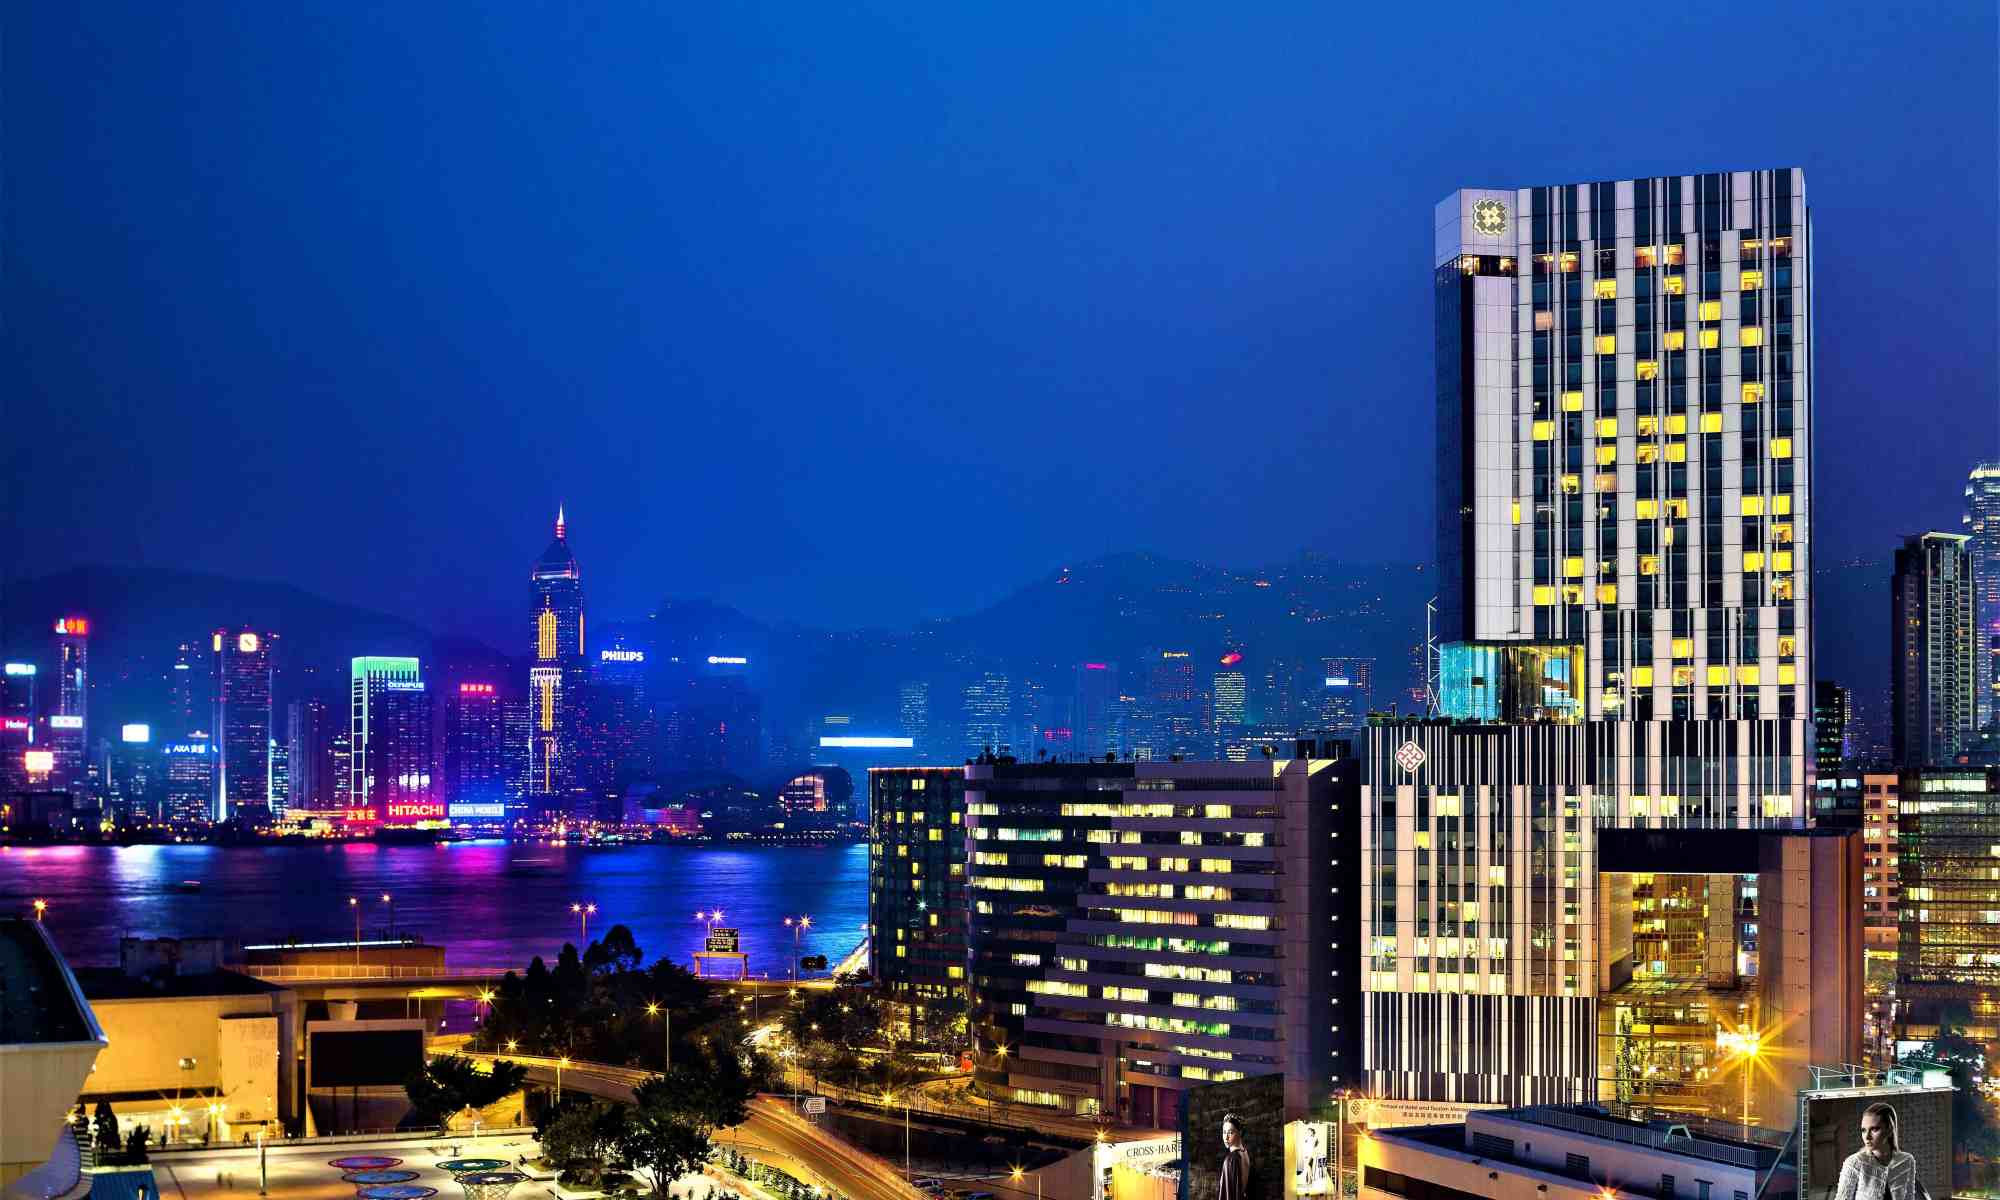 image-of-hotel-icon-and-victoria-harbour-hong-kong-at-night